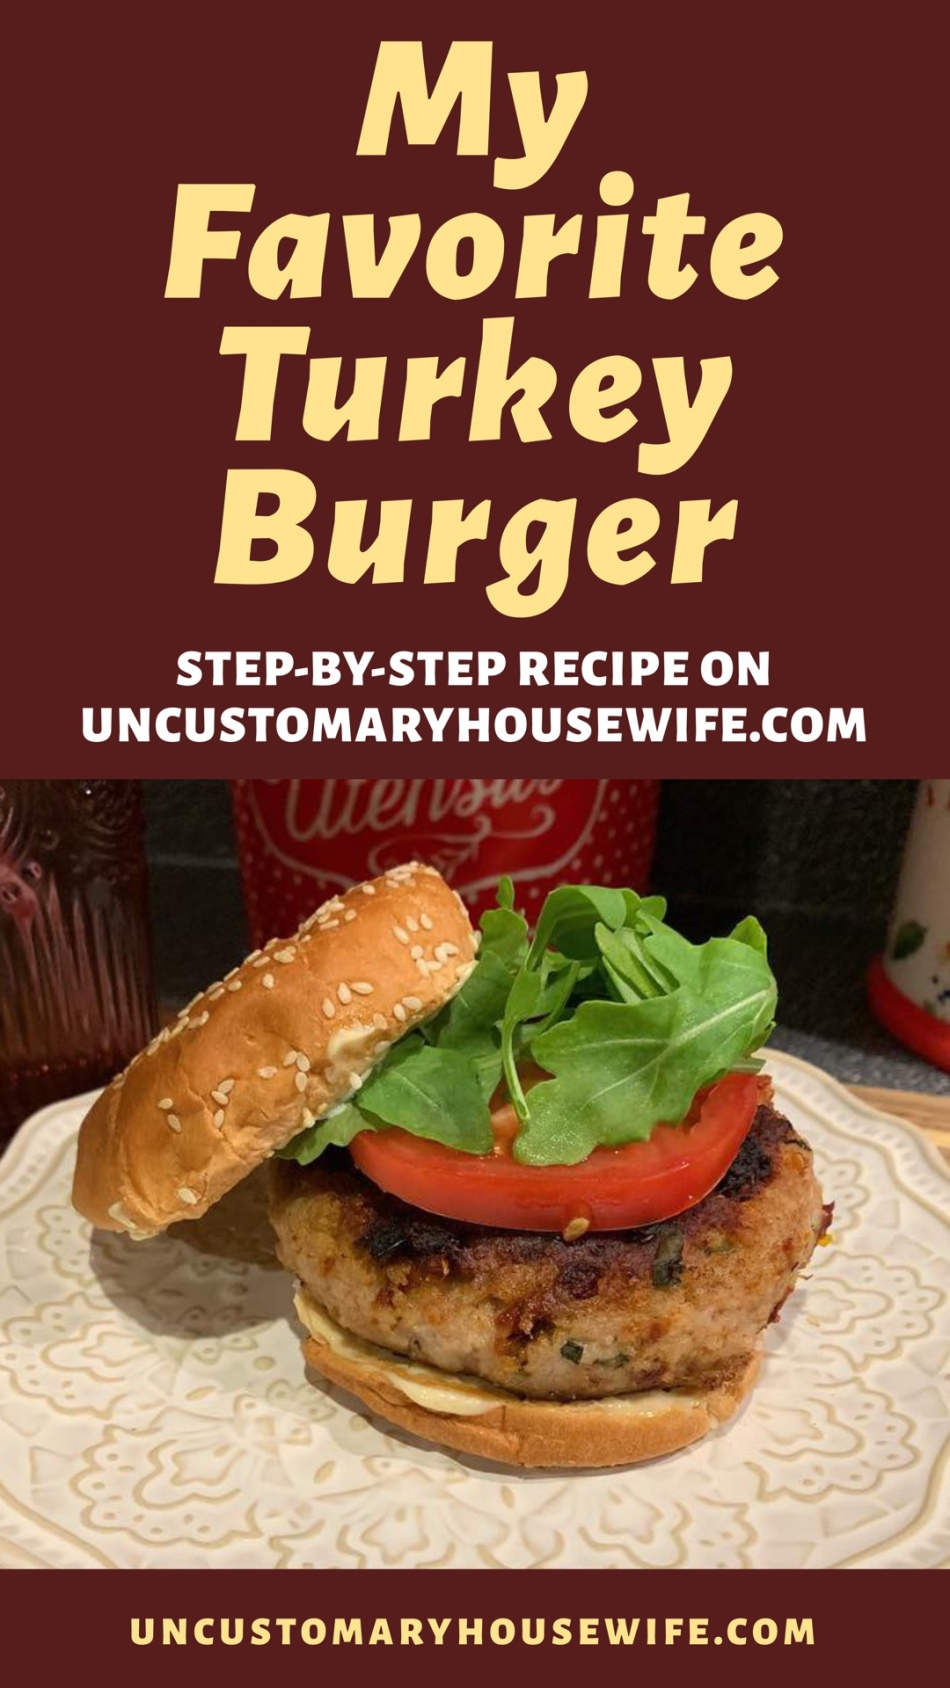 My Favorite Turkey Burger Recipe